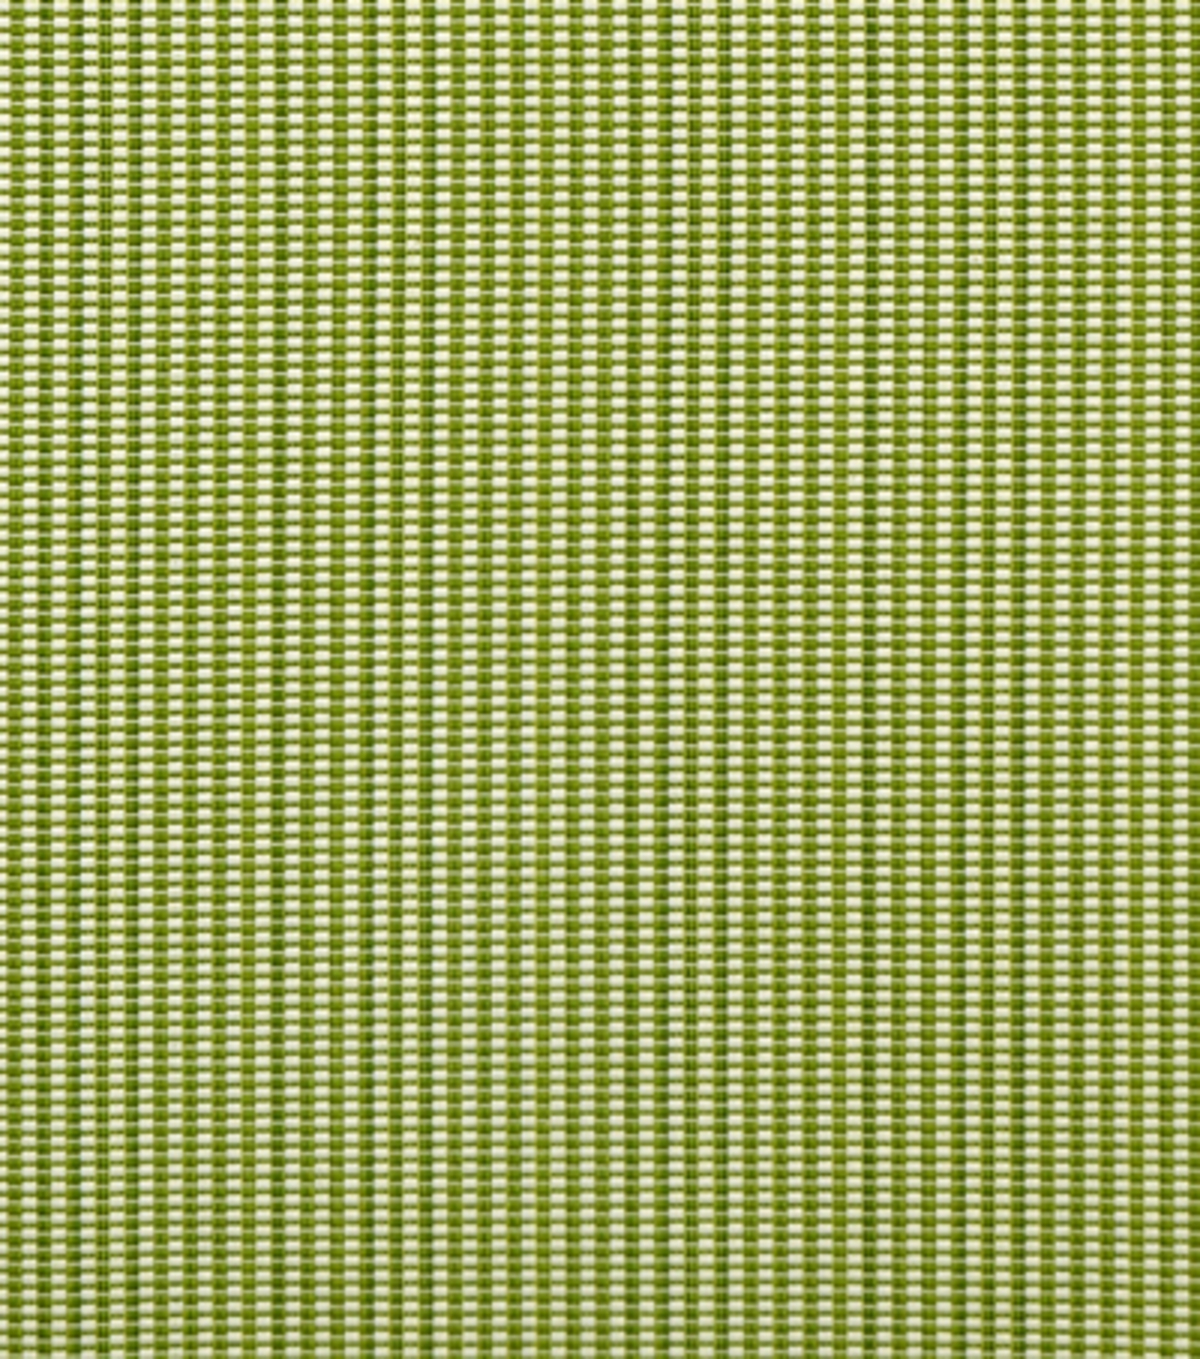 Home Decor 8\u0022x8\u0022 Fabric Swatch-Covington Pixie 251 Island Green